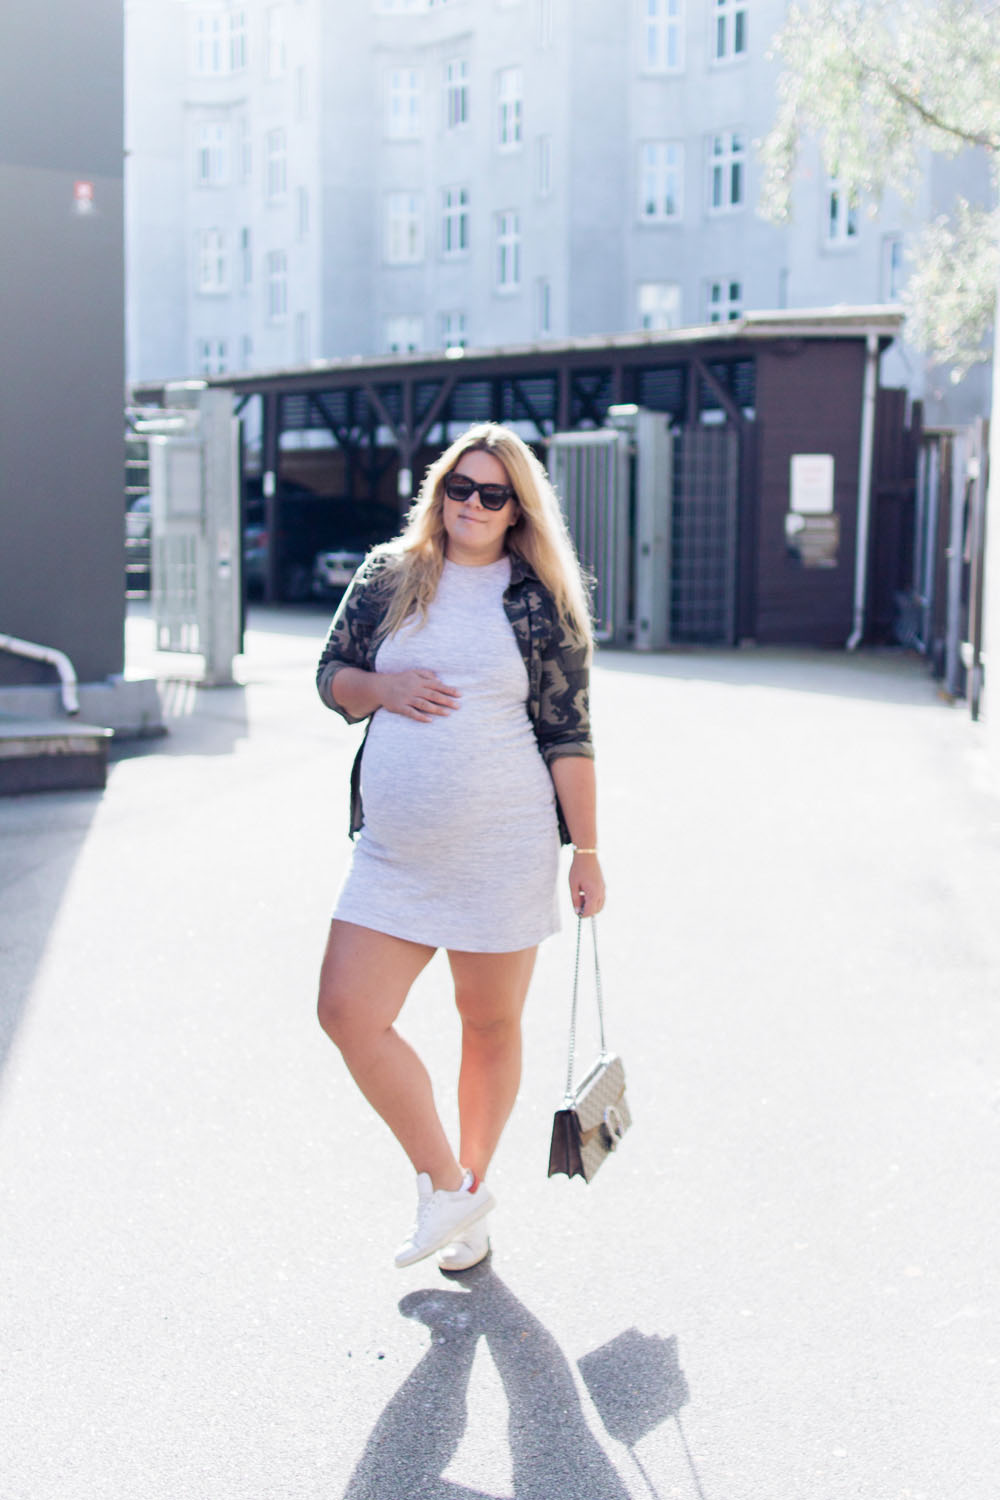 gravid-kjole-acie-uge-40-outfit-11-of-15